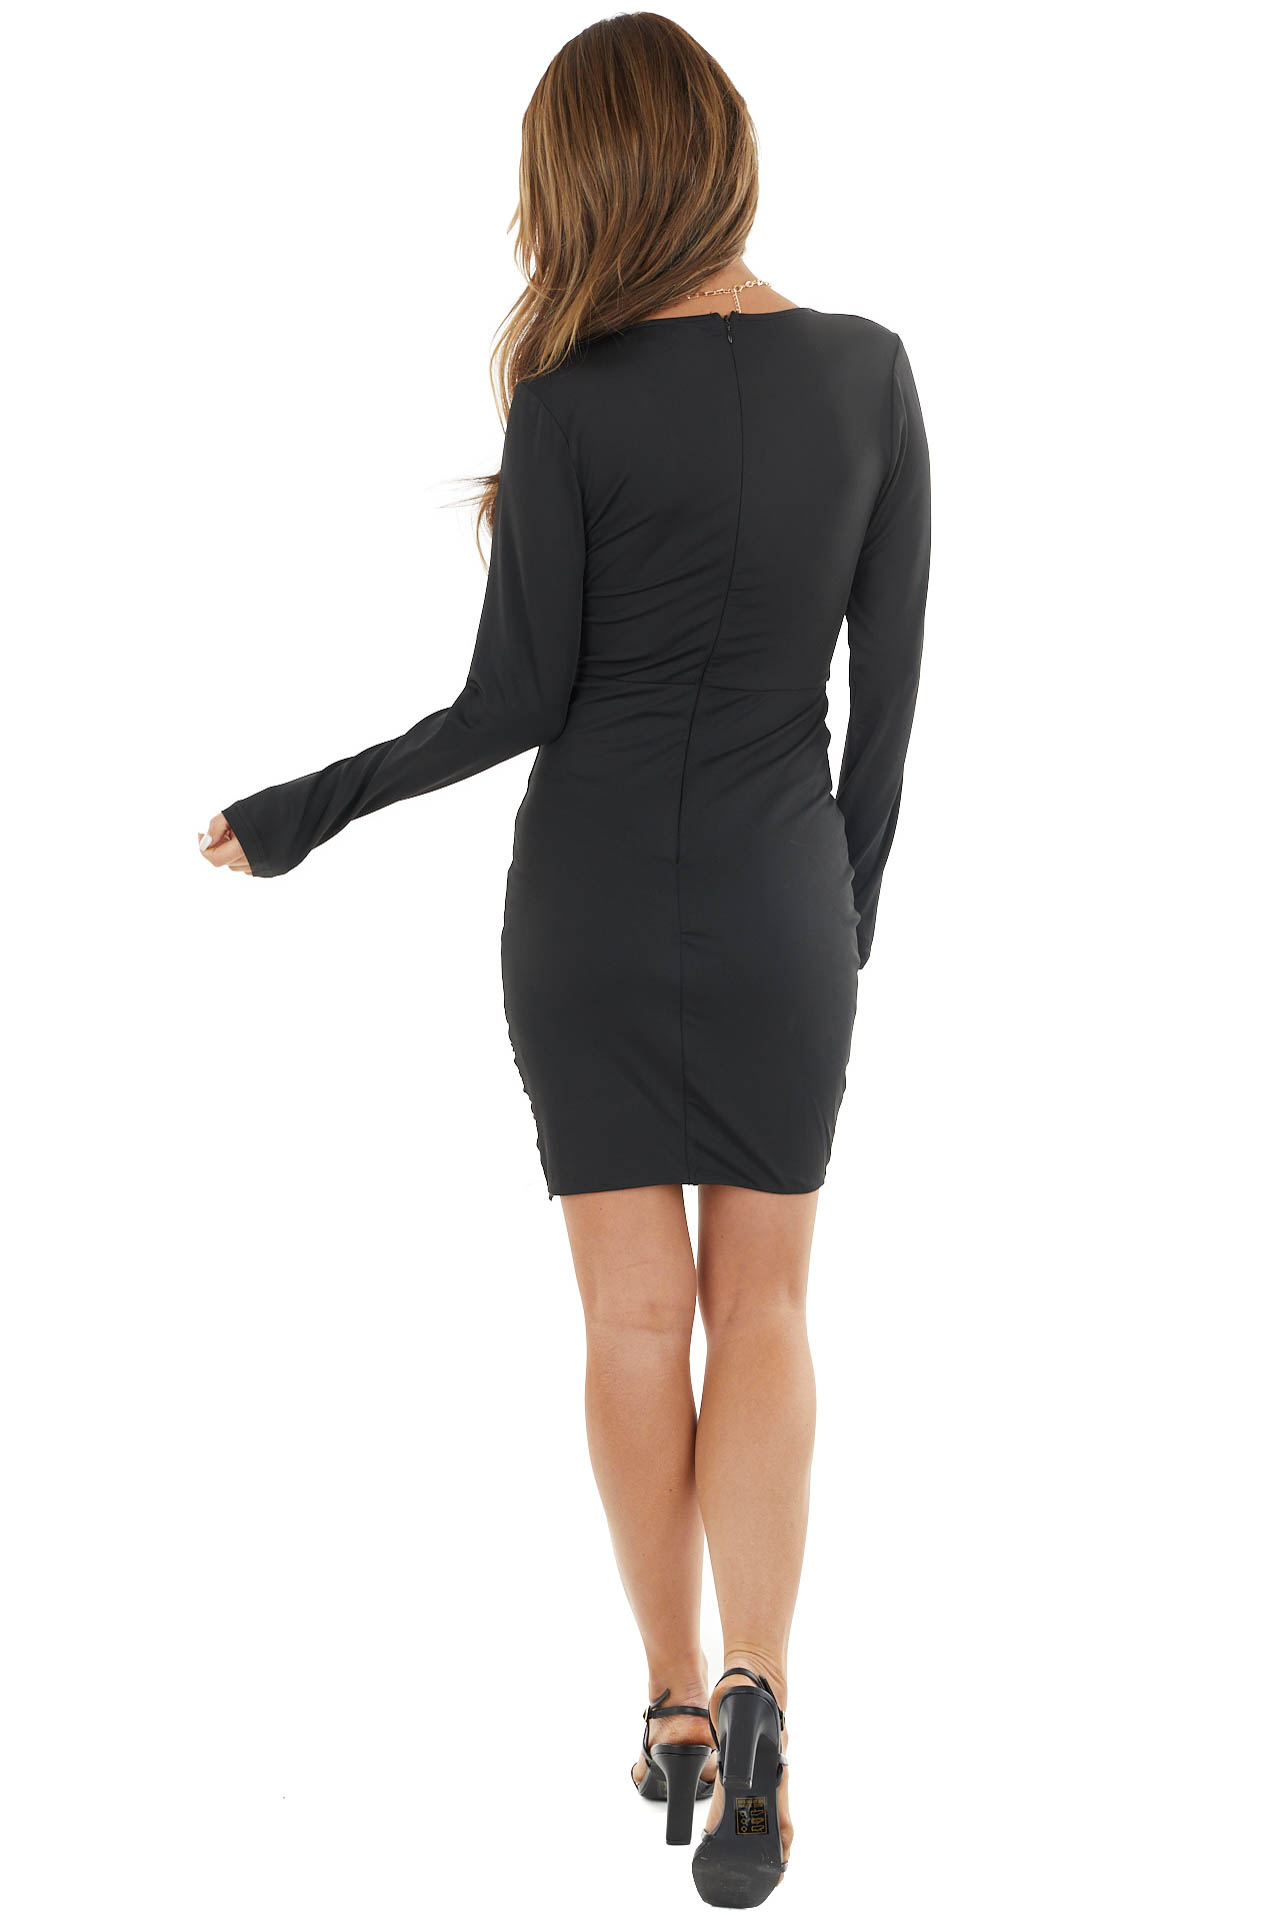 Black Long Sleeve Short Dress with V Neckline and Ruching